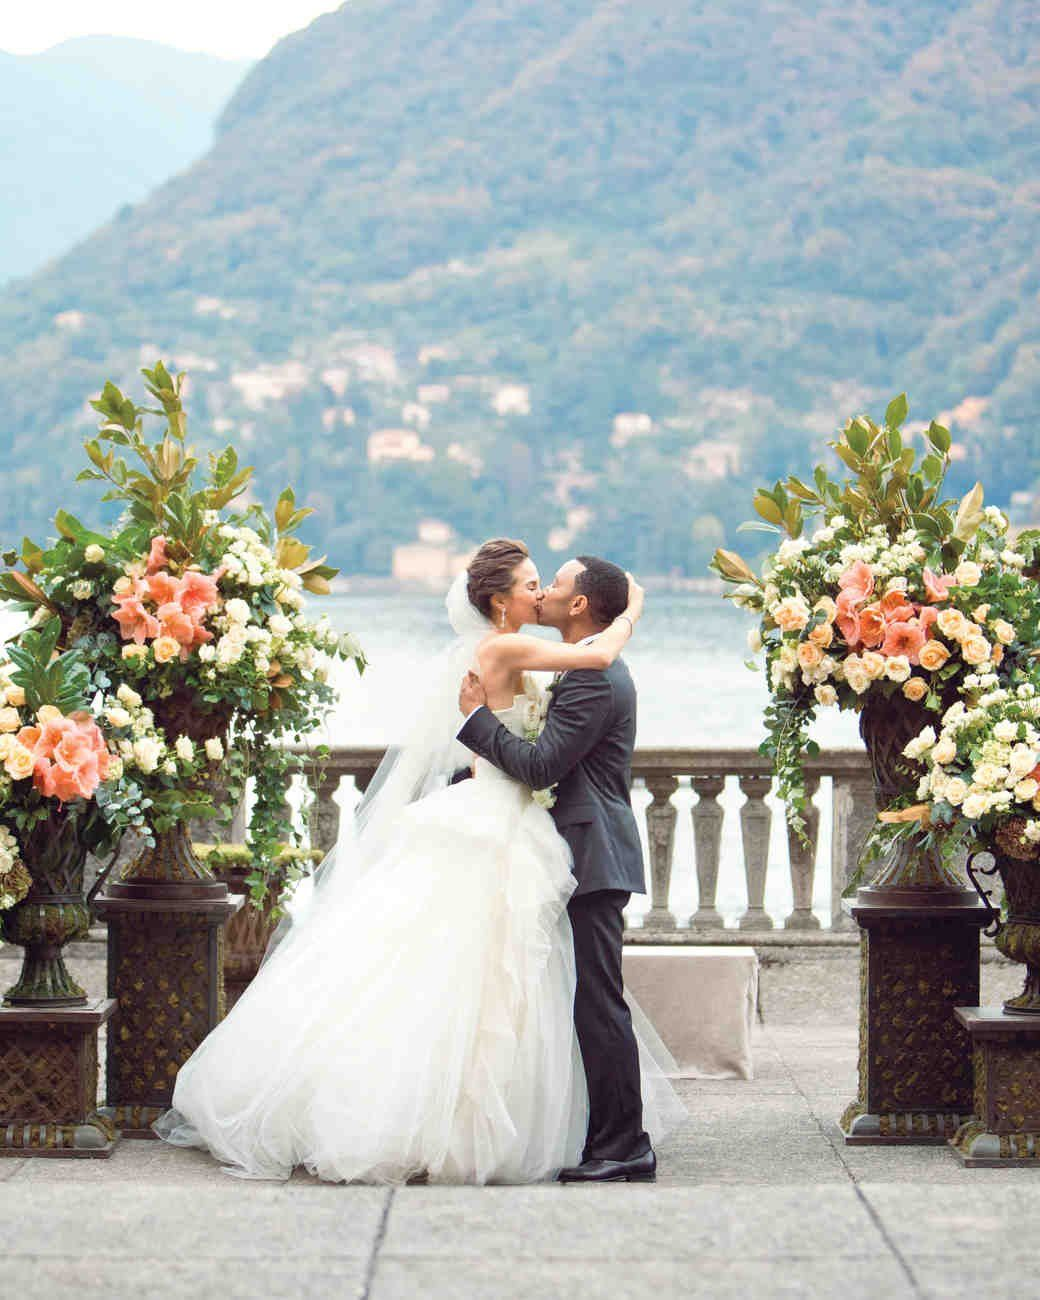 Exclusive Chrissy Teigen And John Legend S Formal Destination Wedding In Lake Como Italy Chrissy Teigen Wedding Italy Wedding Top Wedding Photographers